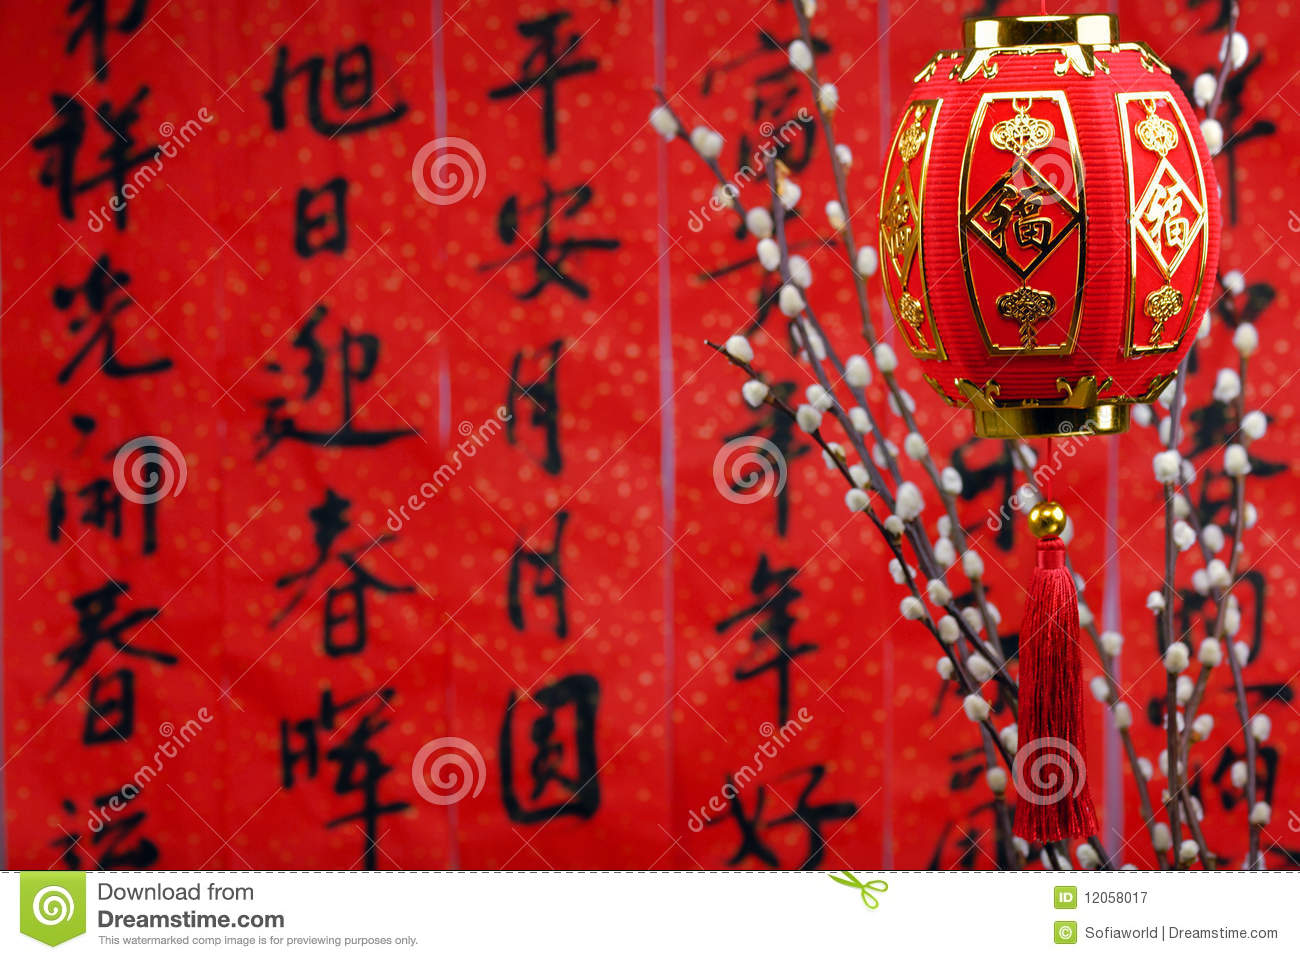 Chinese lunar new year decoration royalty free stock - Lunar new year decorations ...